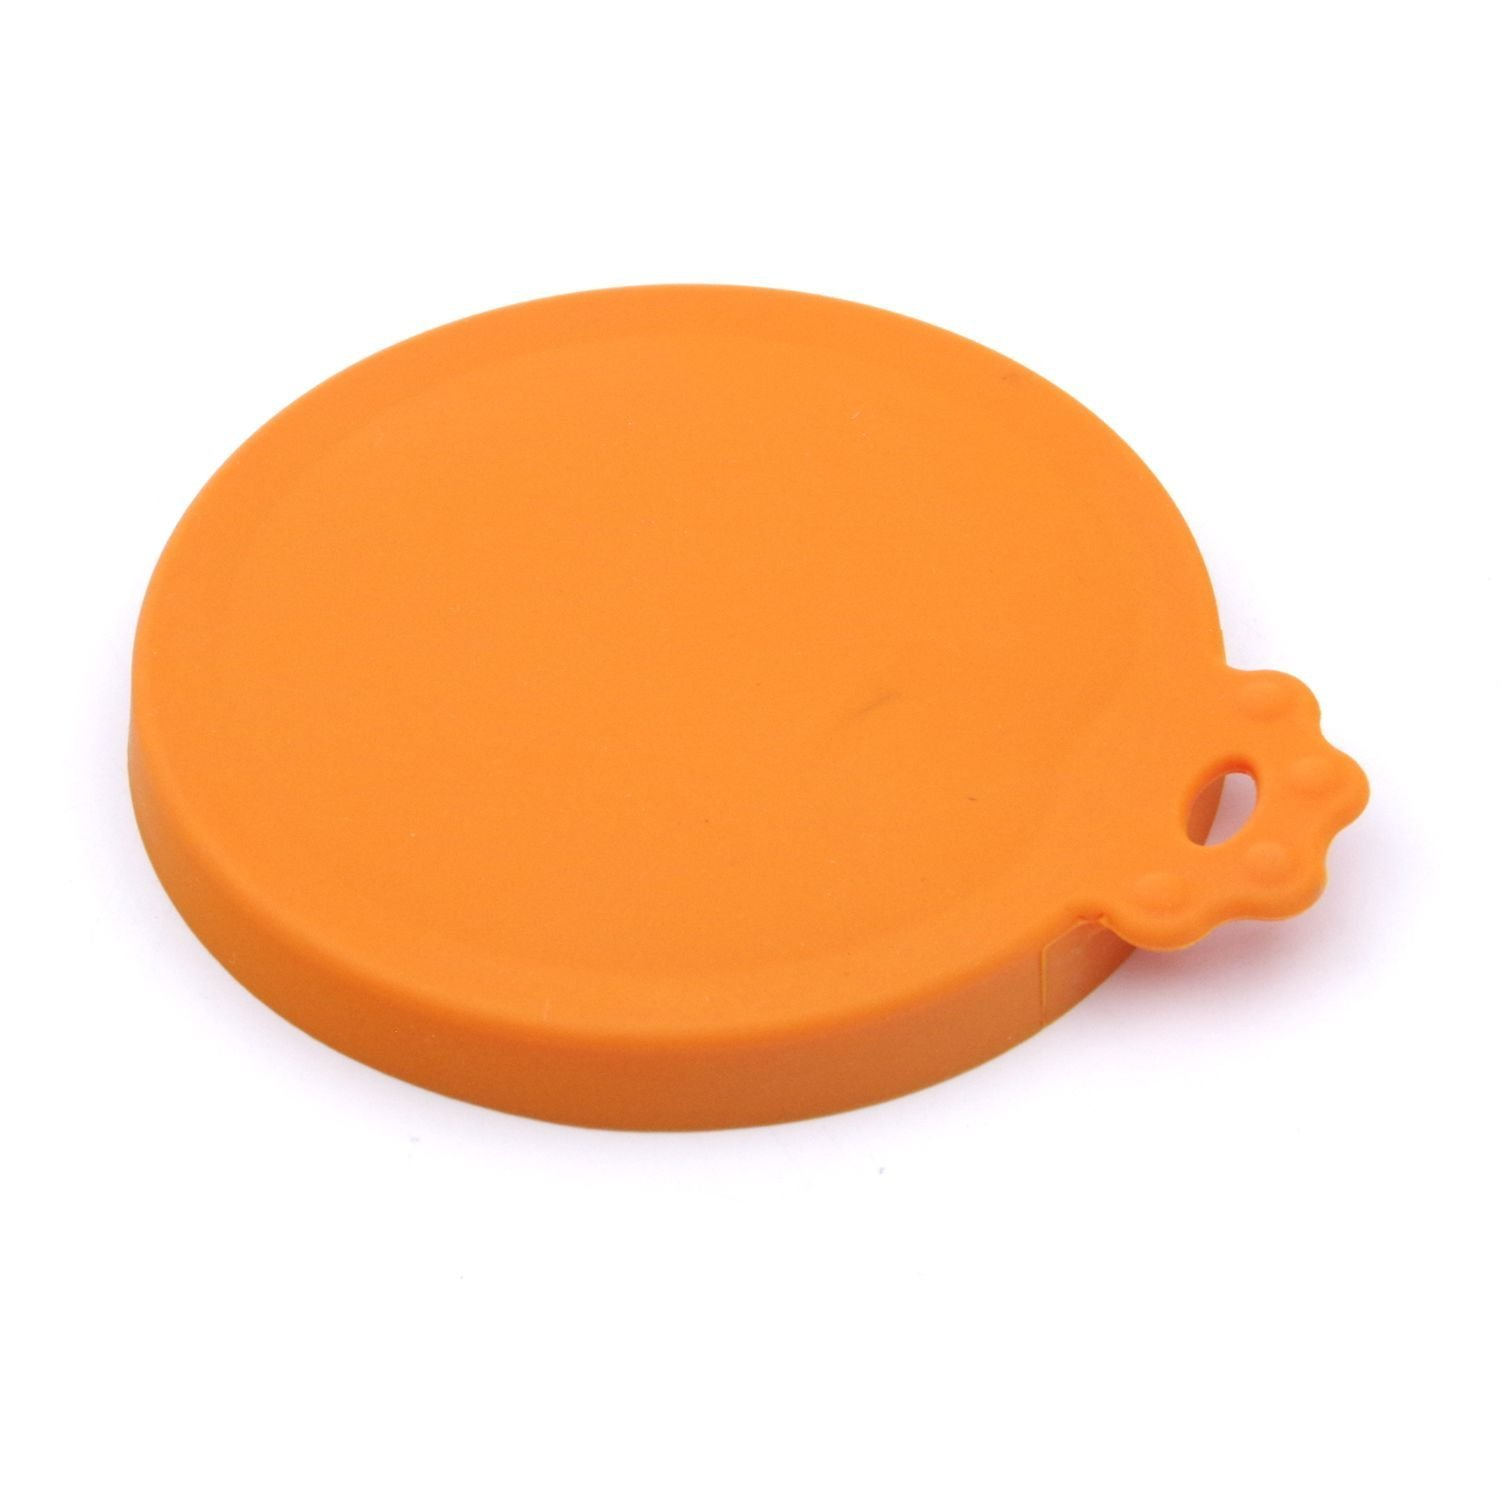 Super Design Silicone Can Cover for Multiple Sizes Orange